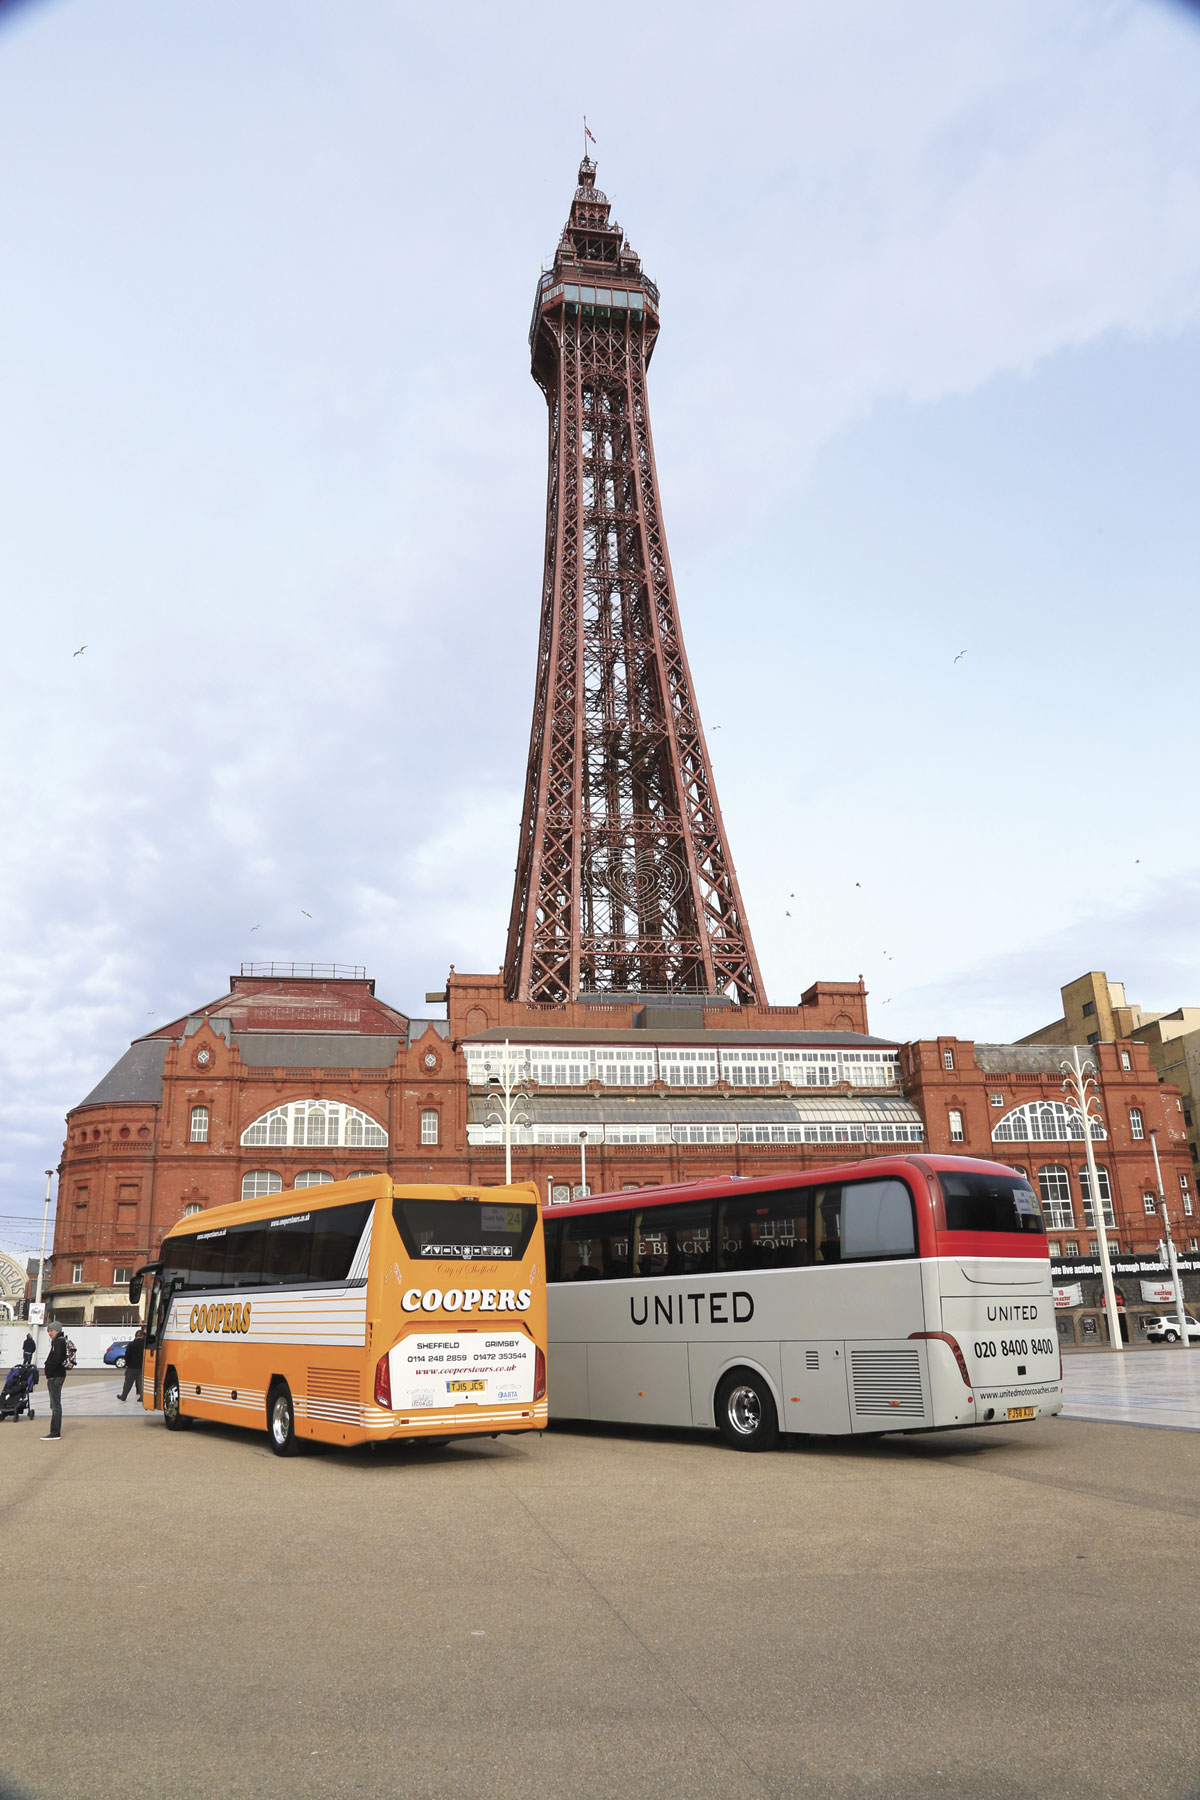 Blackpool's iconic Tower formed a focal point for the Rally